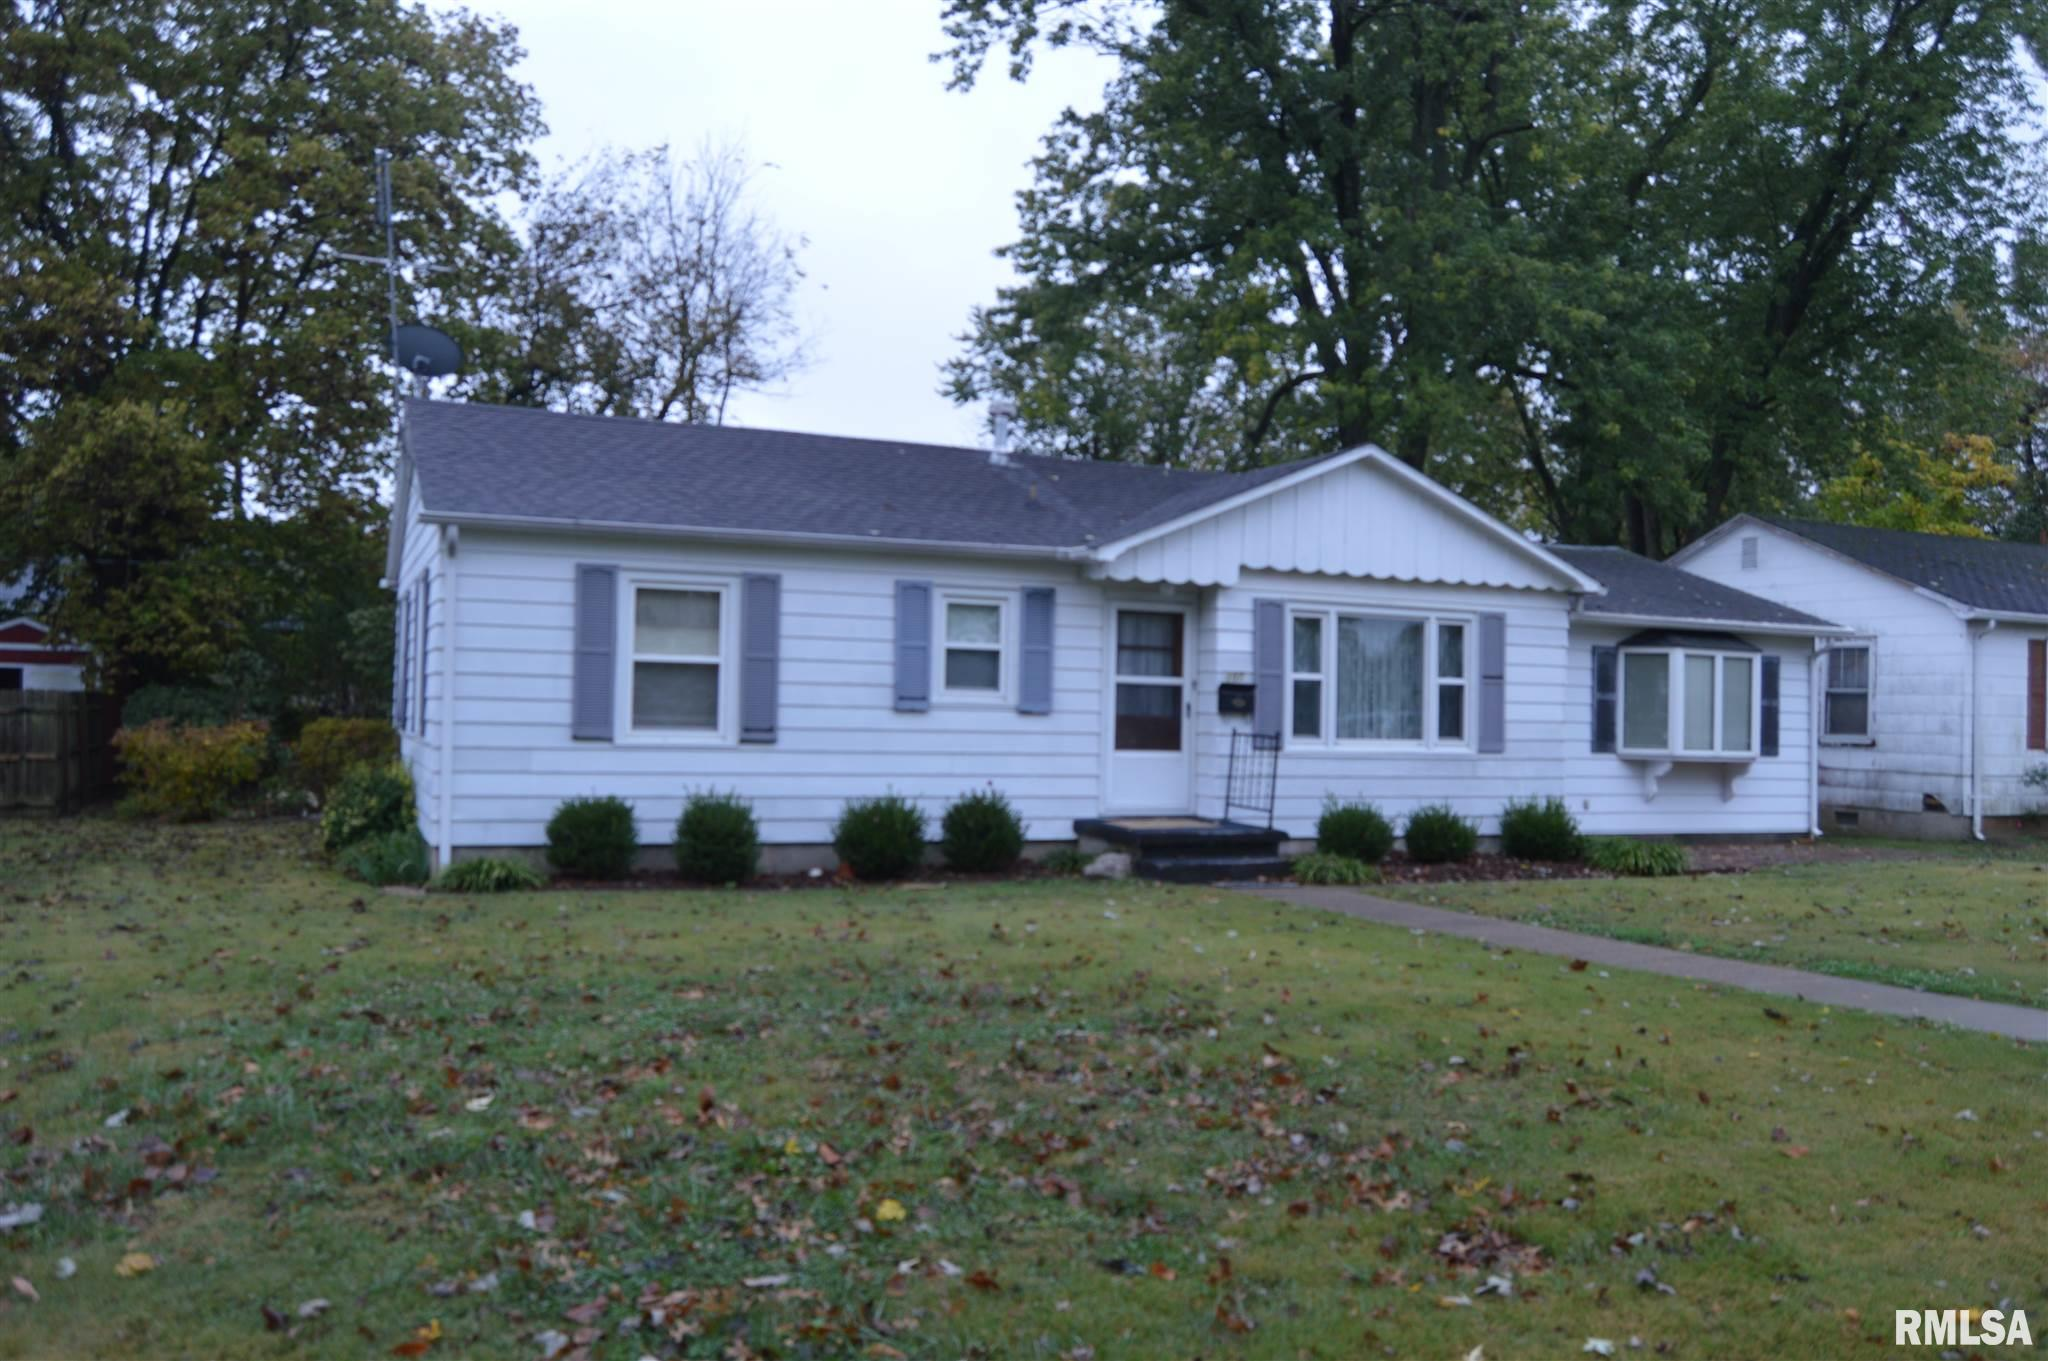 107 E FAIR Property Photo - Carmi, IL real estate listing